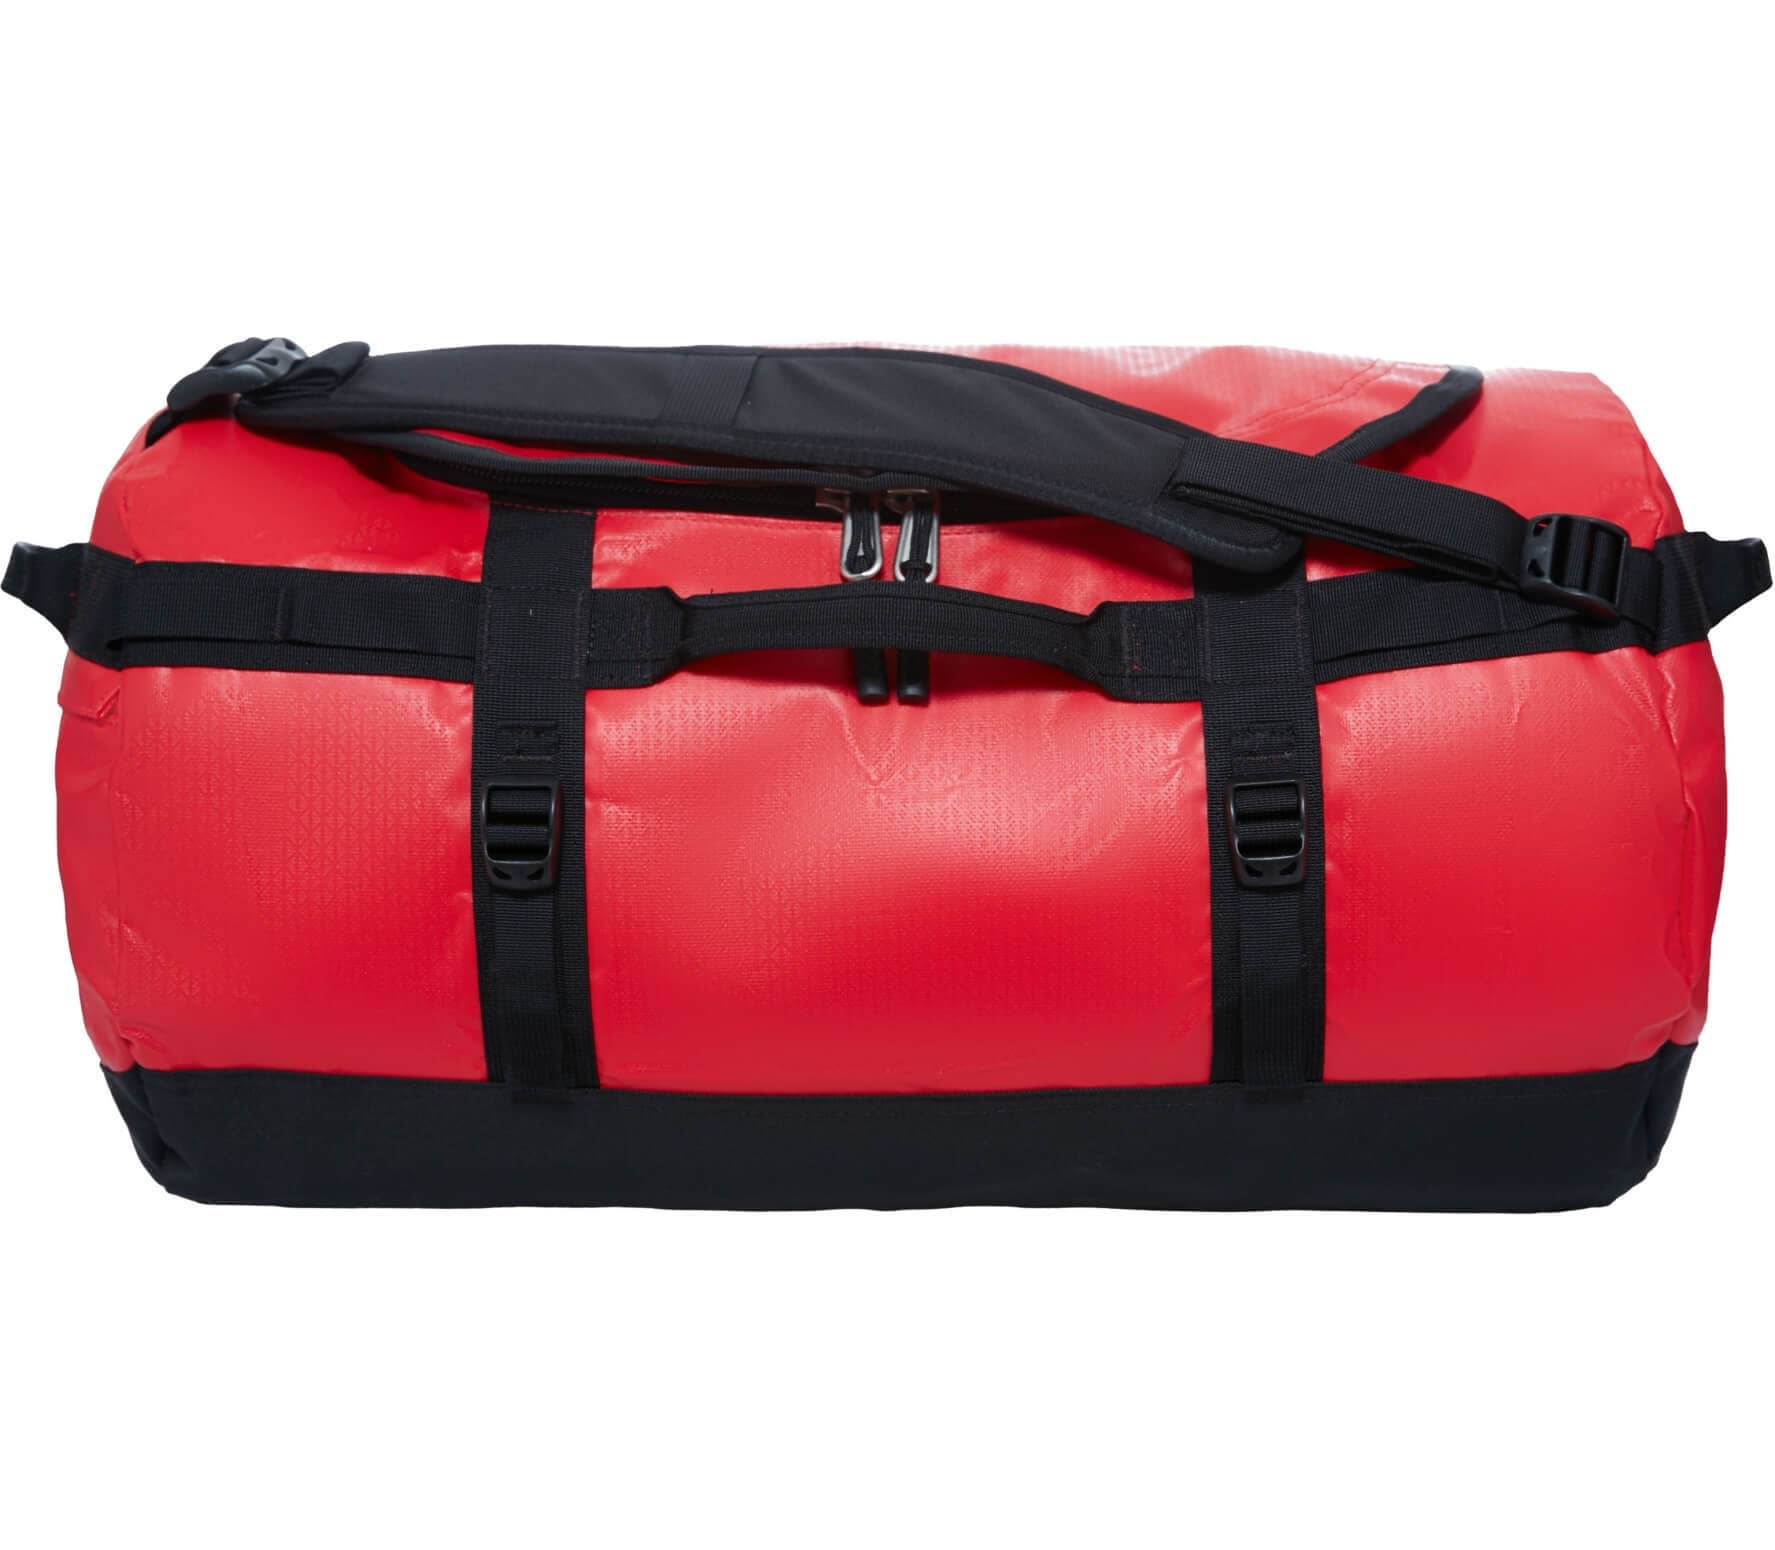 The North Face - Base Camp duffel Bag S (rød/sort) thumbnail